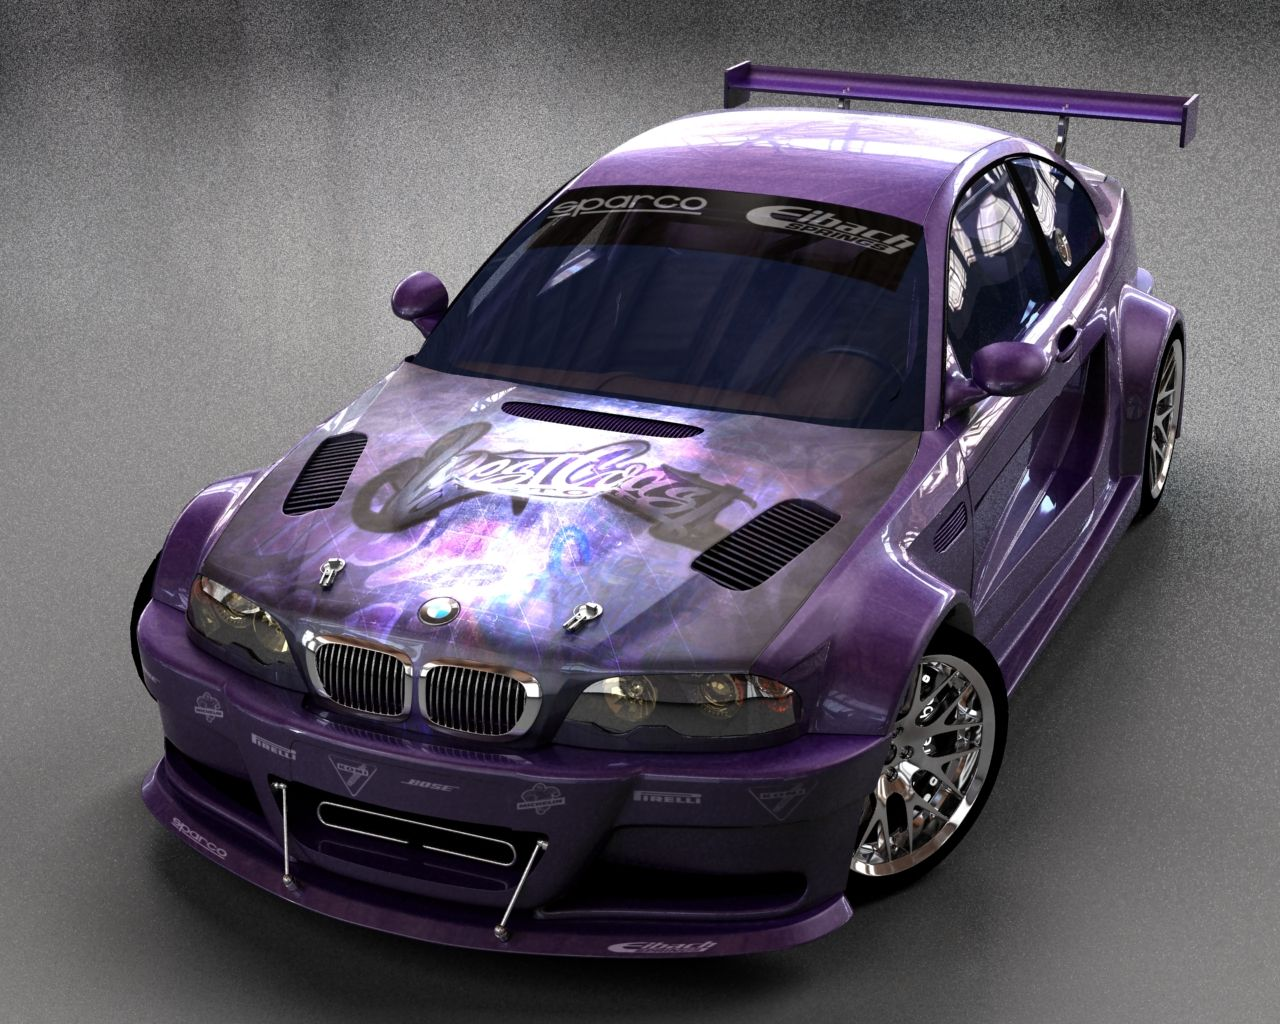 BMW M3 GTR West Coast Custom By Stefanmarius On DeviantArt BMW